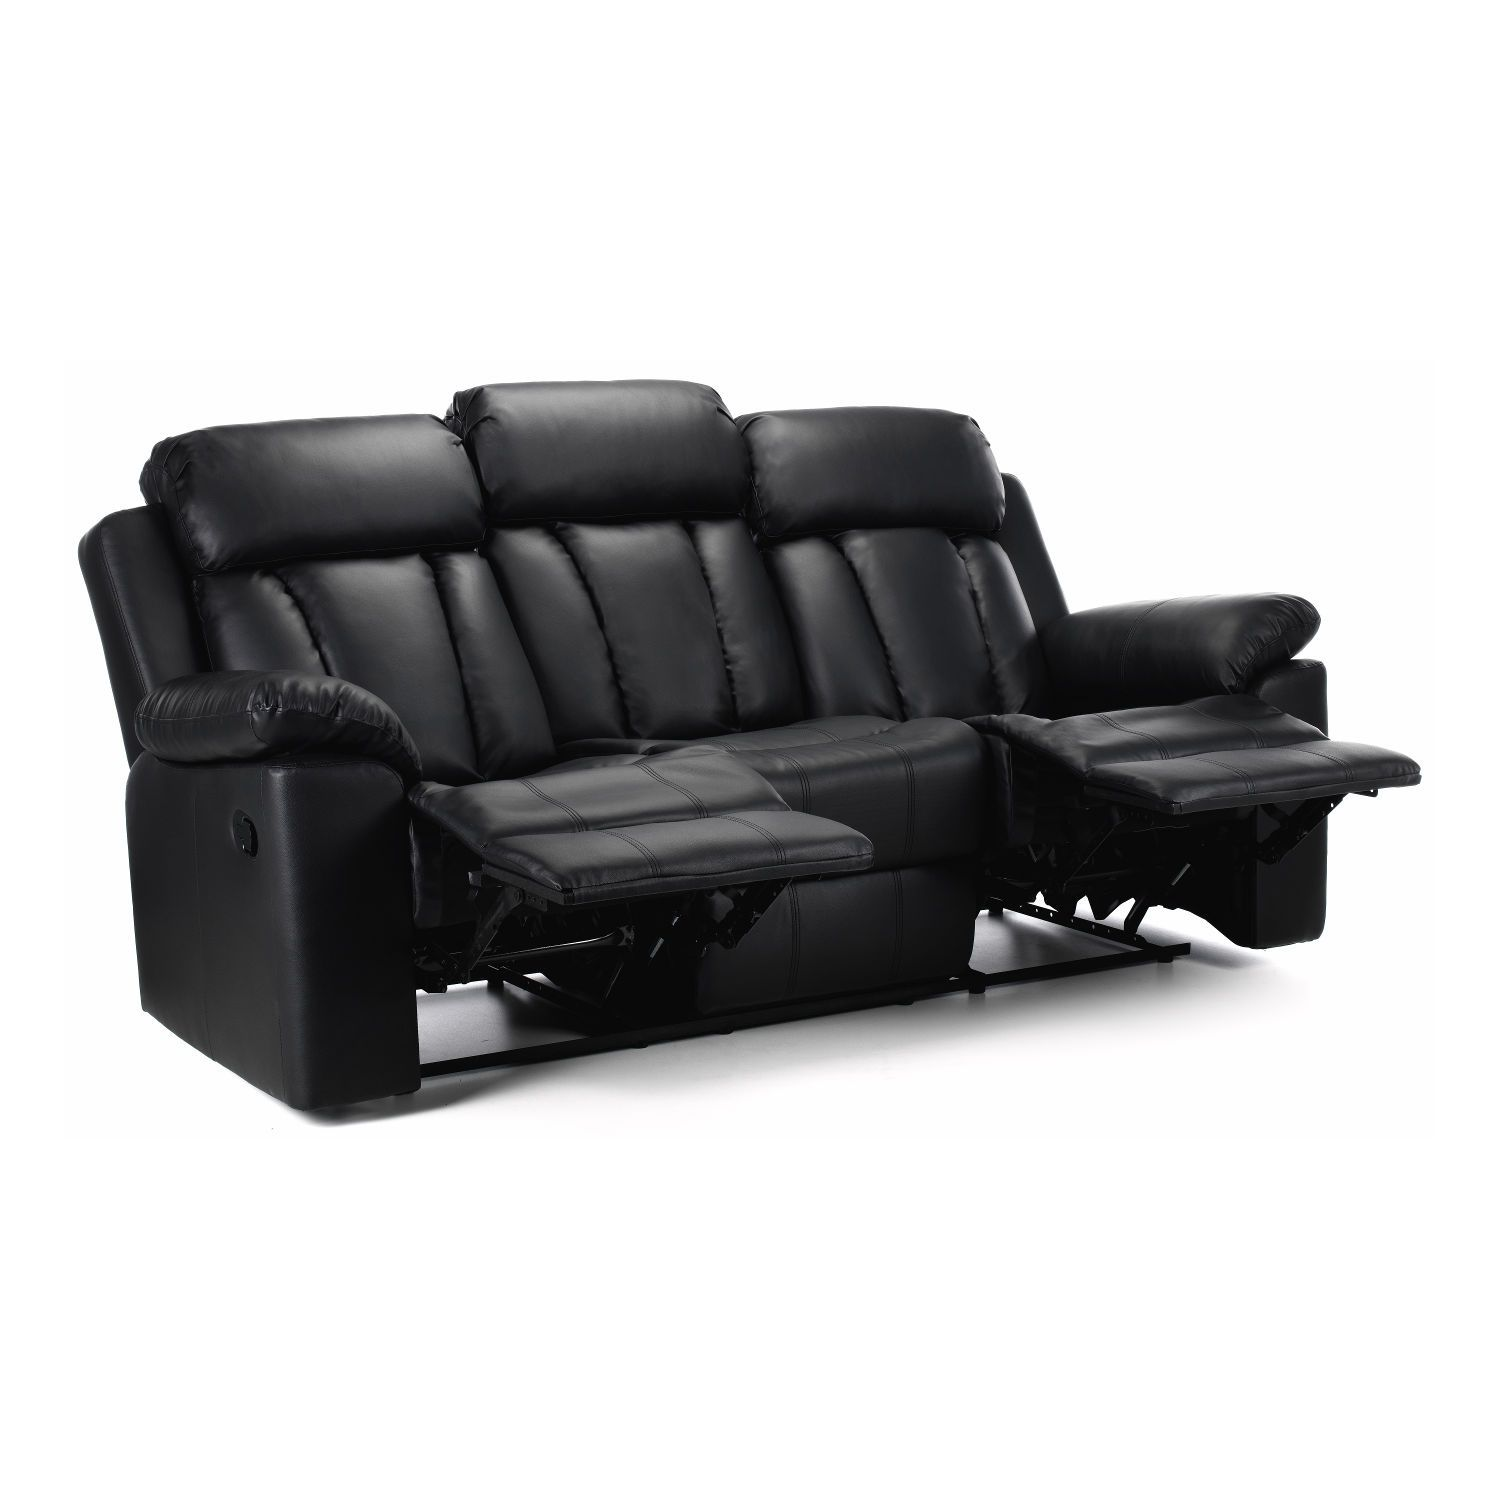 Cranbrook 3 Seater Leather Reclining Sofa Just 469 99 On Worldstores Co Uk Http Bit Ly 1fbyotl